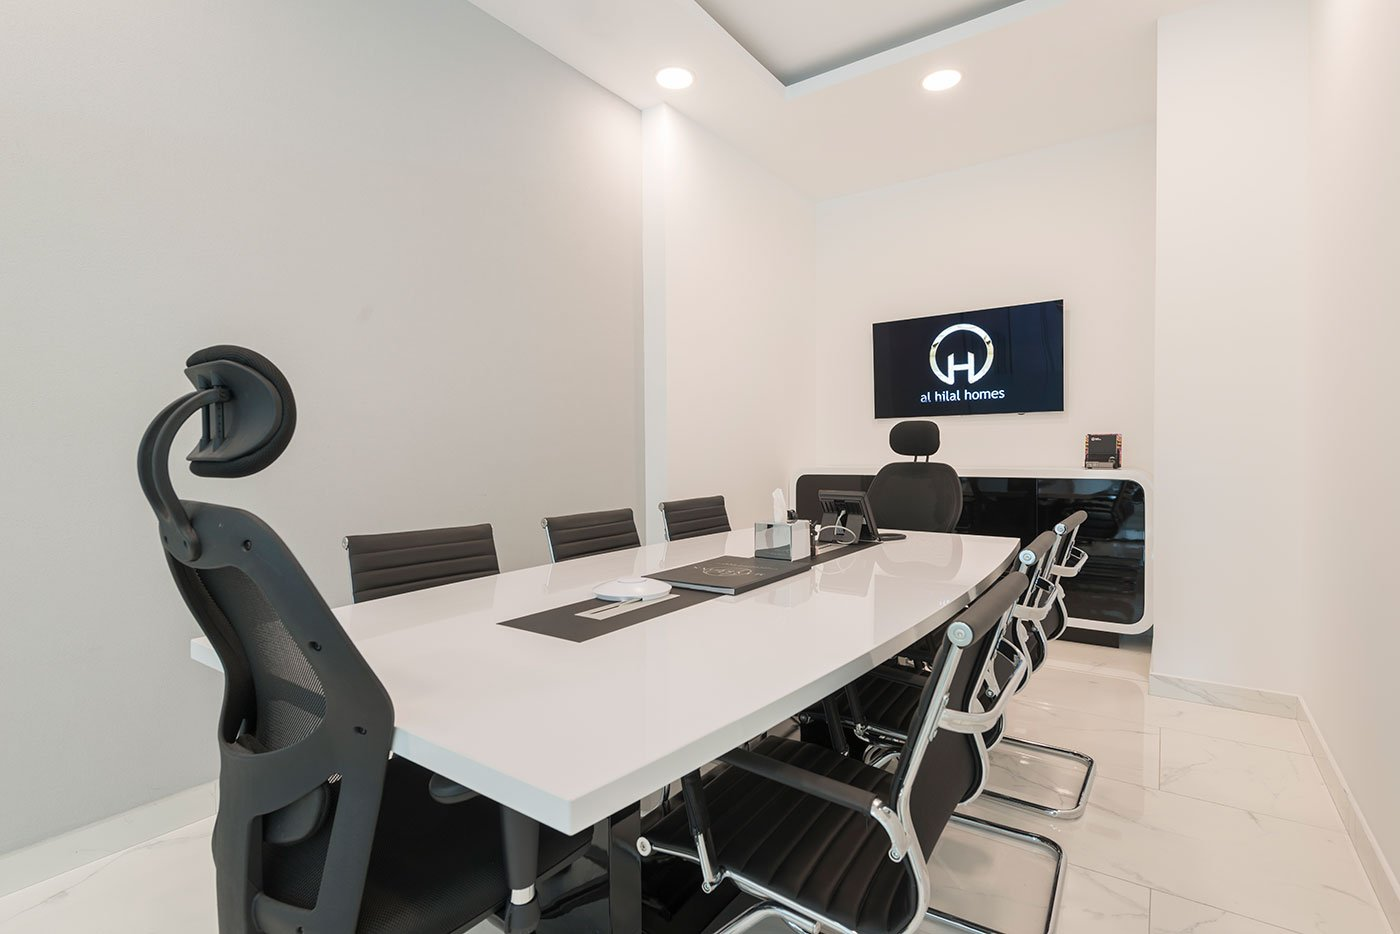 interior of a meeting room at an office in dubai